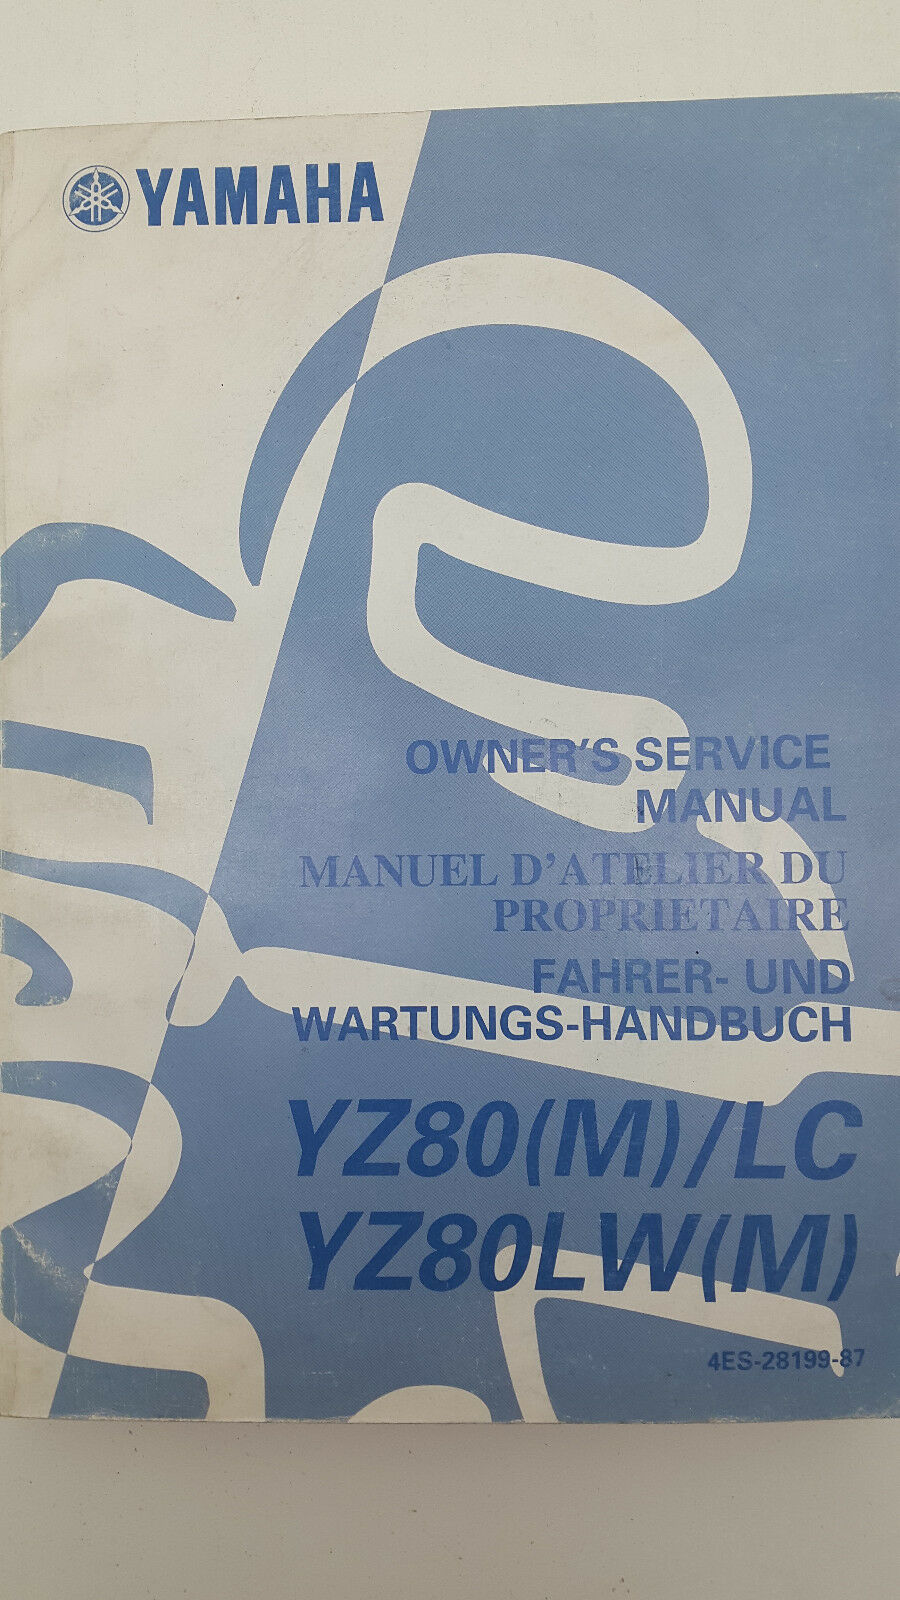 Yz 80 Manual Citroen C5 Workshop Repair Dvd Wiring Diagrams 1st 2nd Array Yamaha Yz80 M 2000 Yz80m Genuine Factory Service Rh Ebay Com